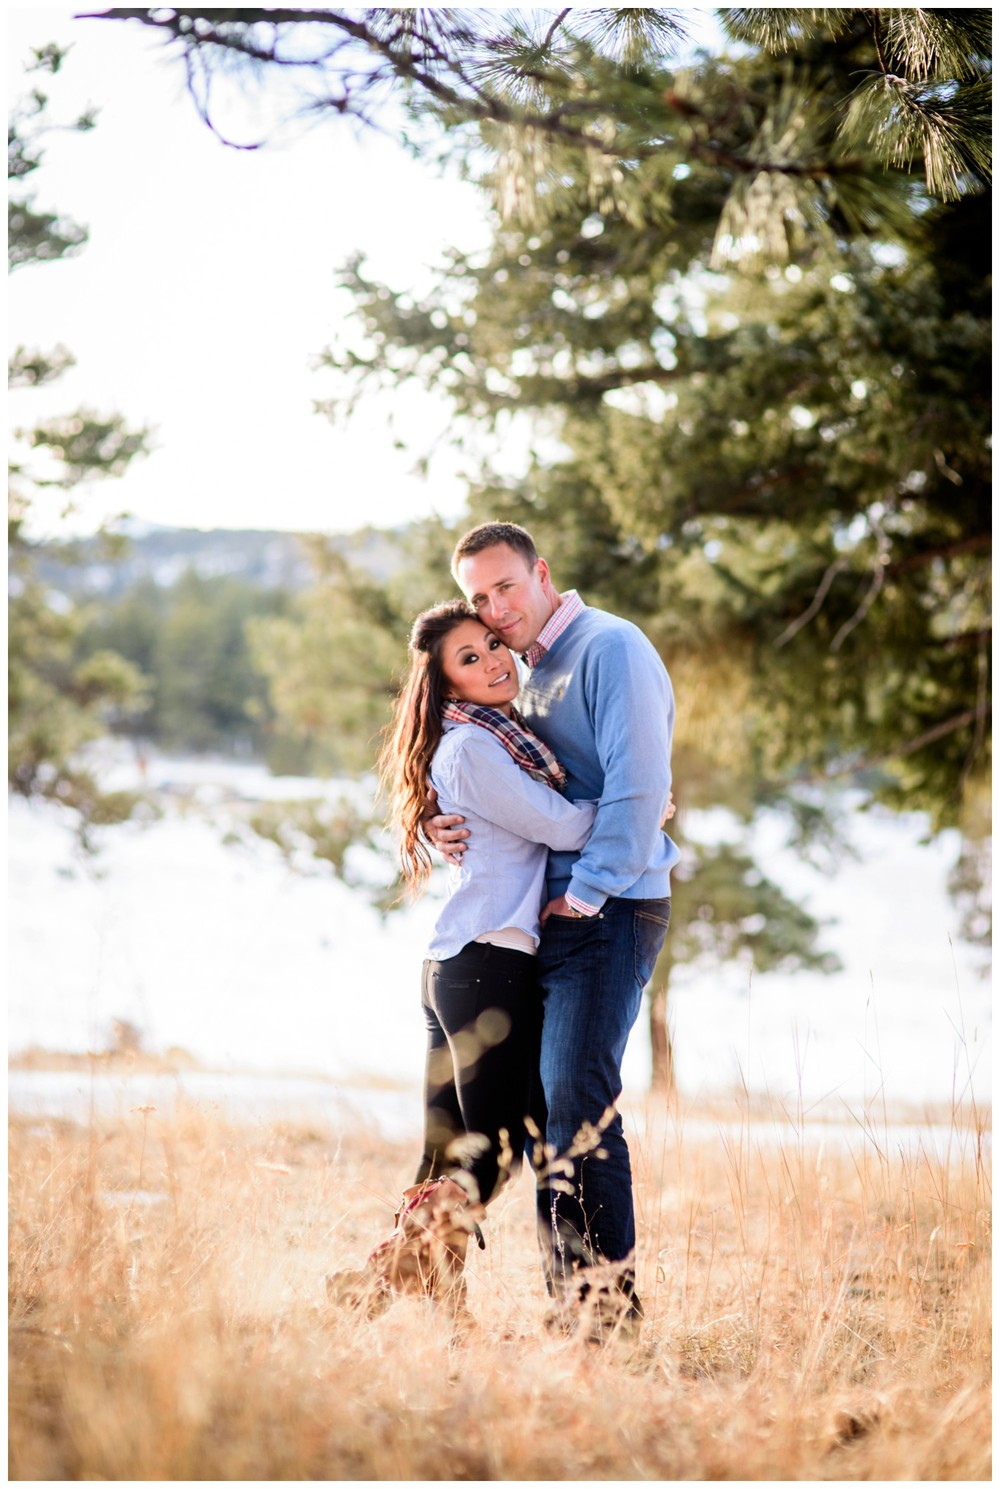 engagement photo in sunny Colorado Pine trees